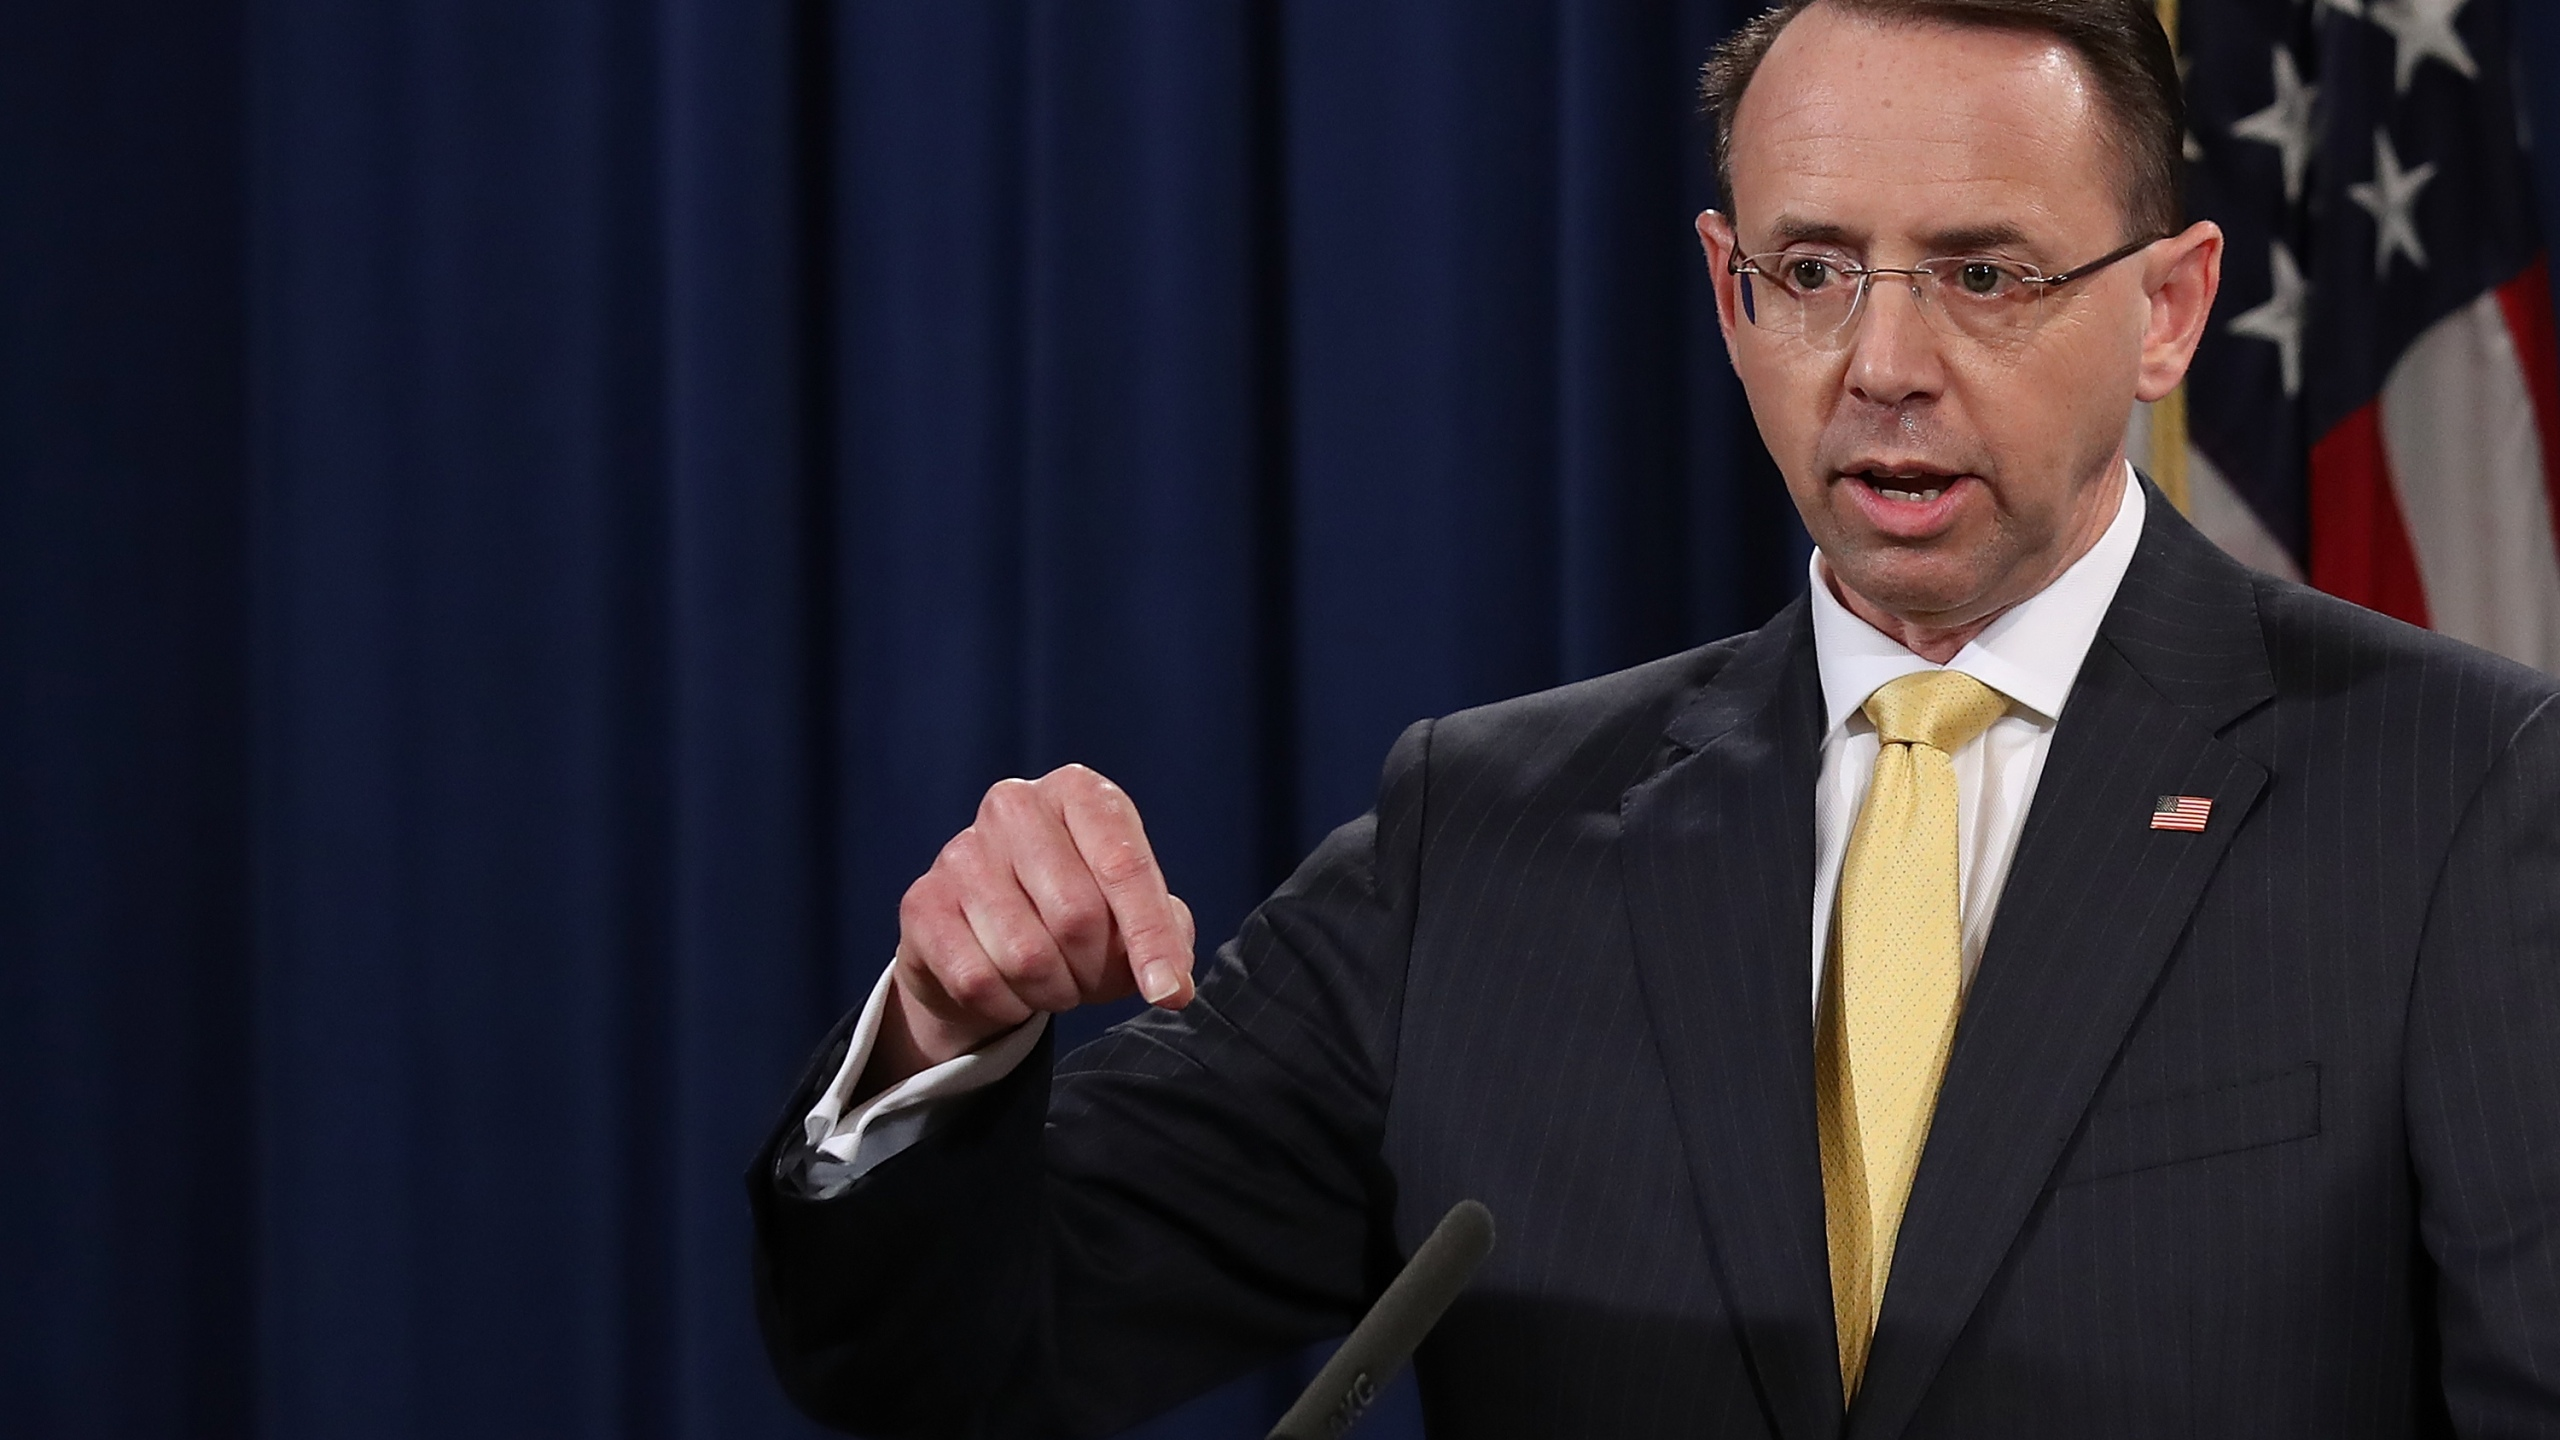 Deputy Attorney General Rod Rosenstein announces the indictment of 13 Russian nationals and three Russian organizations for meddling in the 2016 presidential election on Feb. 16, 2018, at the Justice Department. (Credit: Win McNamee / Getty Images)